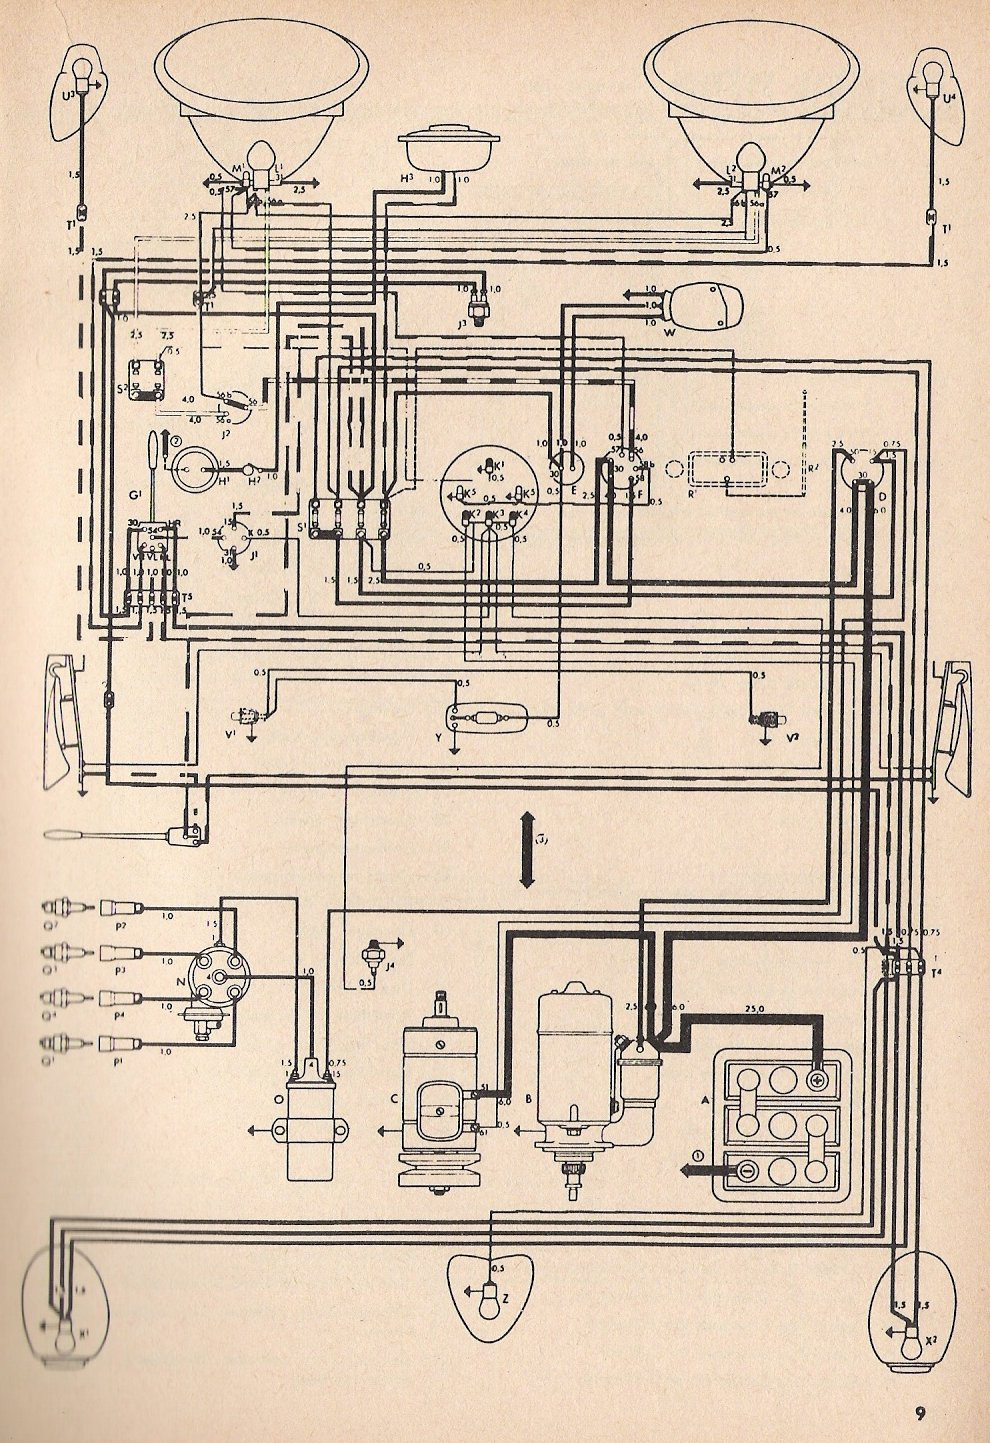 Wiring Diagram Beetle 1973 Guide And Troubleshooting Of Vw Engine On Super Thesamba Com Type 1 Diagrams Rh 1972 Ignition Switch